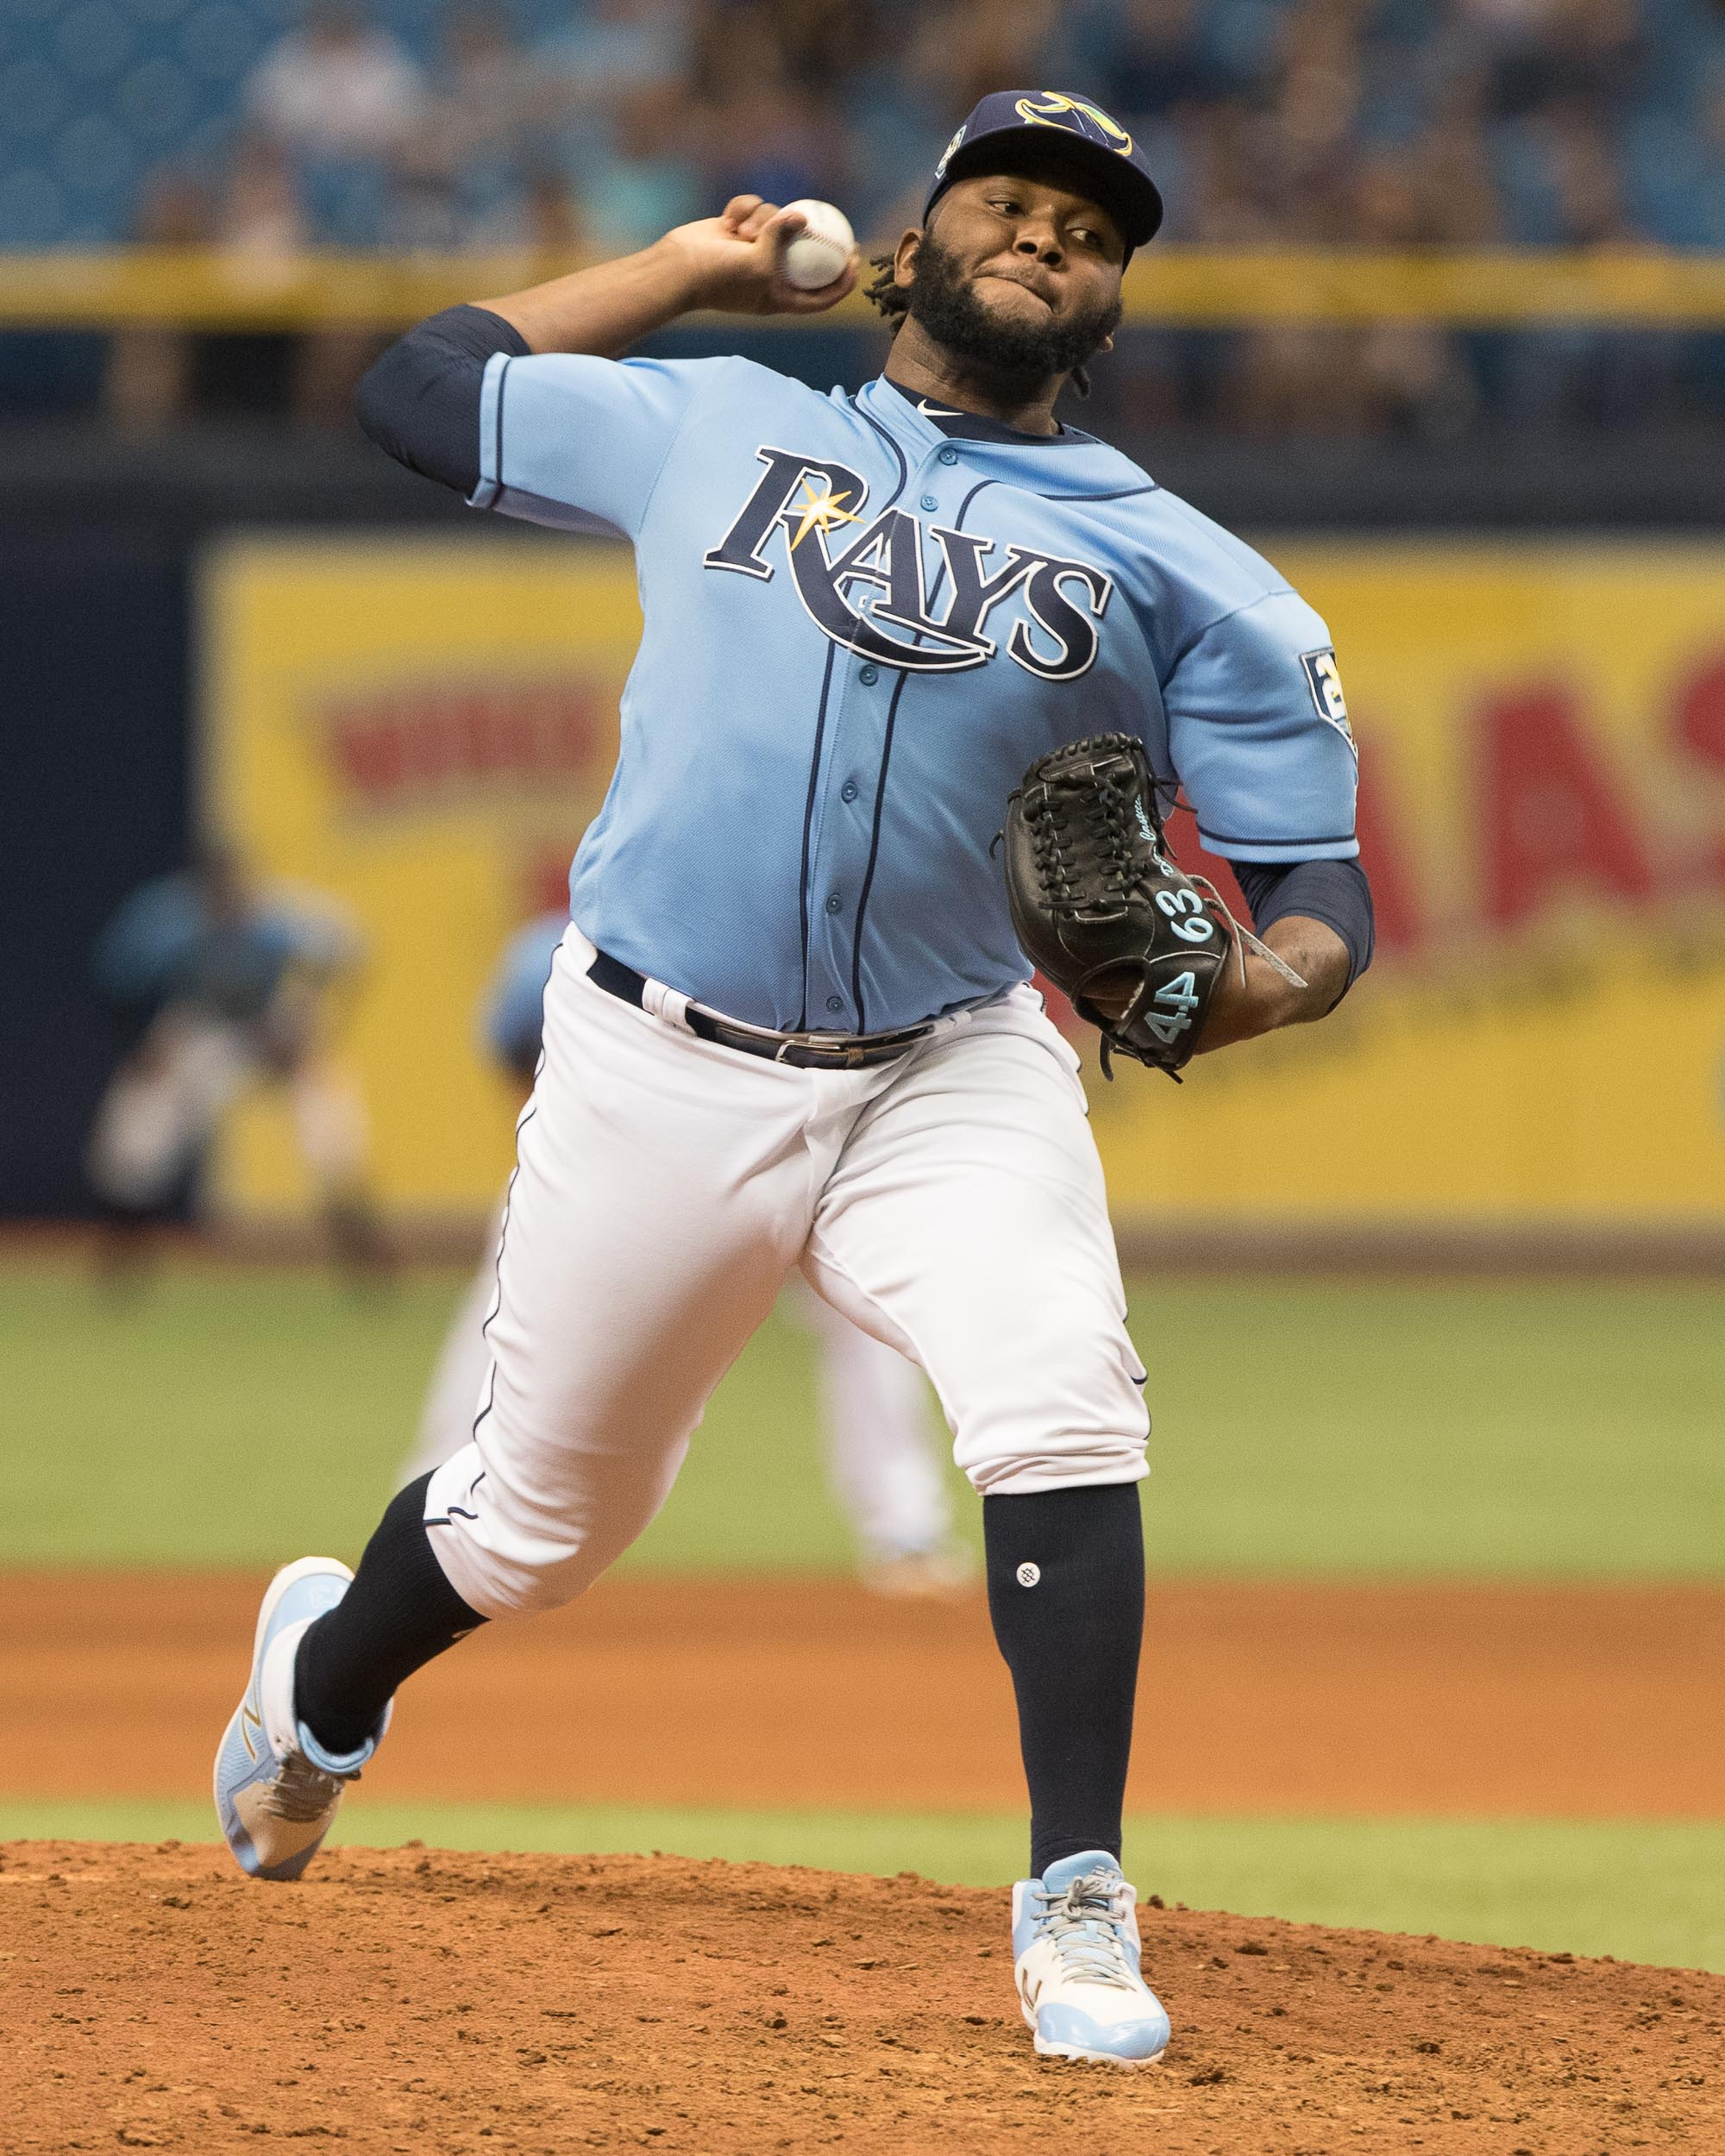 Diego Castillo took the loss for the Rays./STEVEN MUNCIE